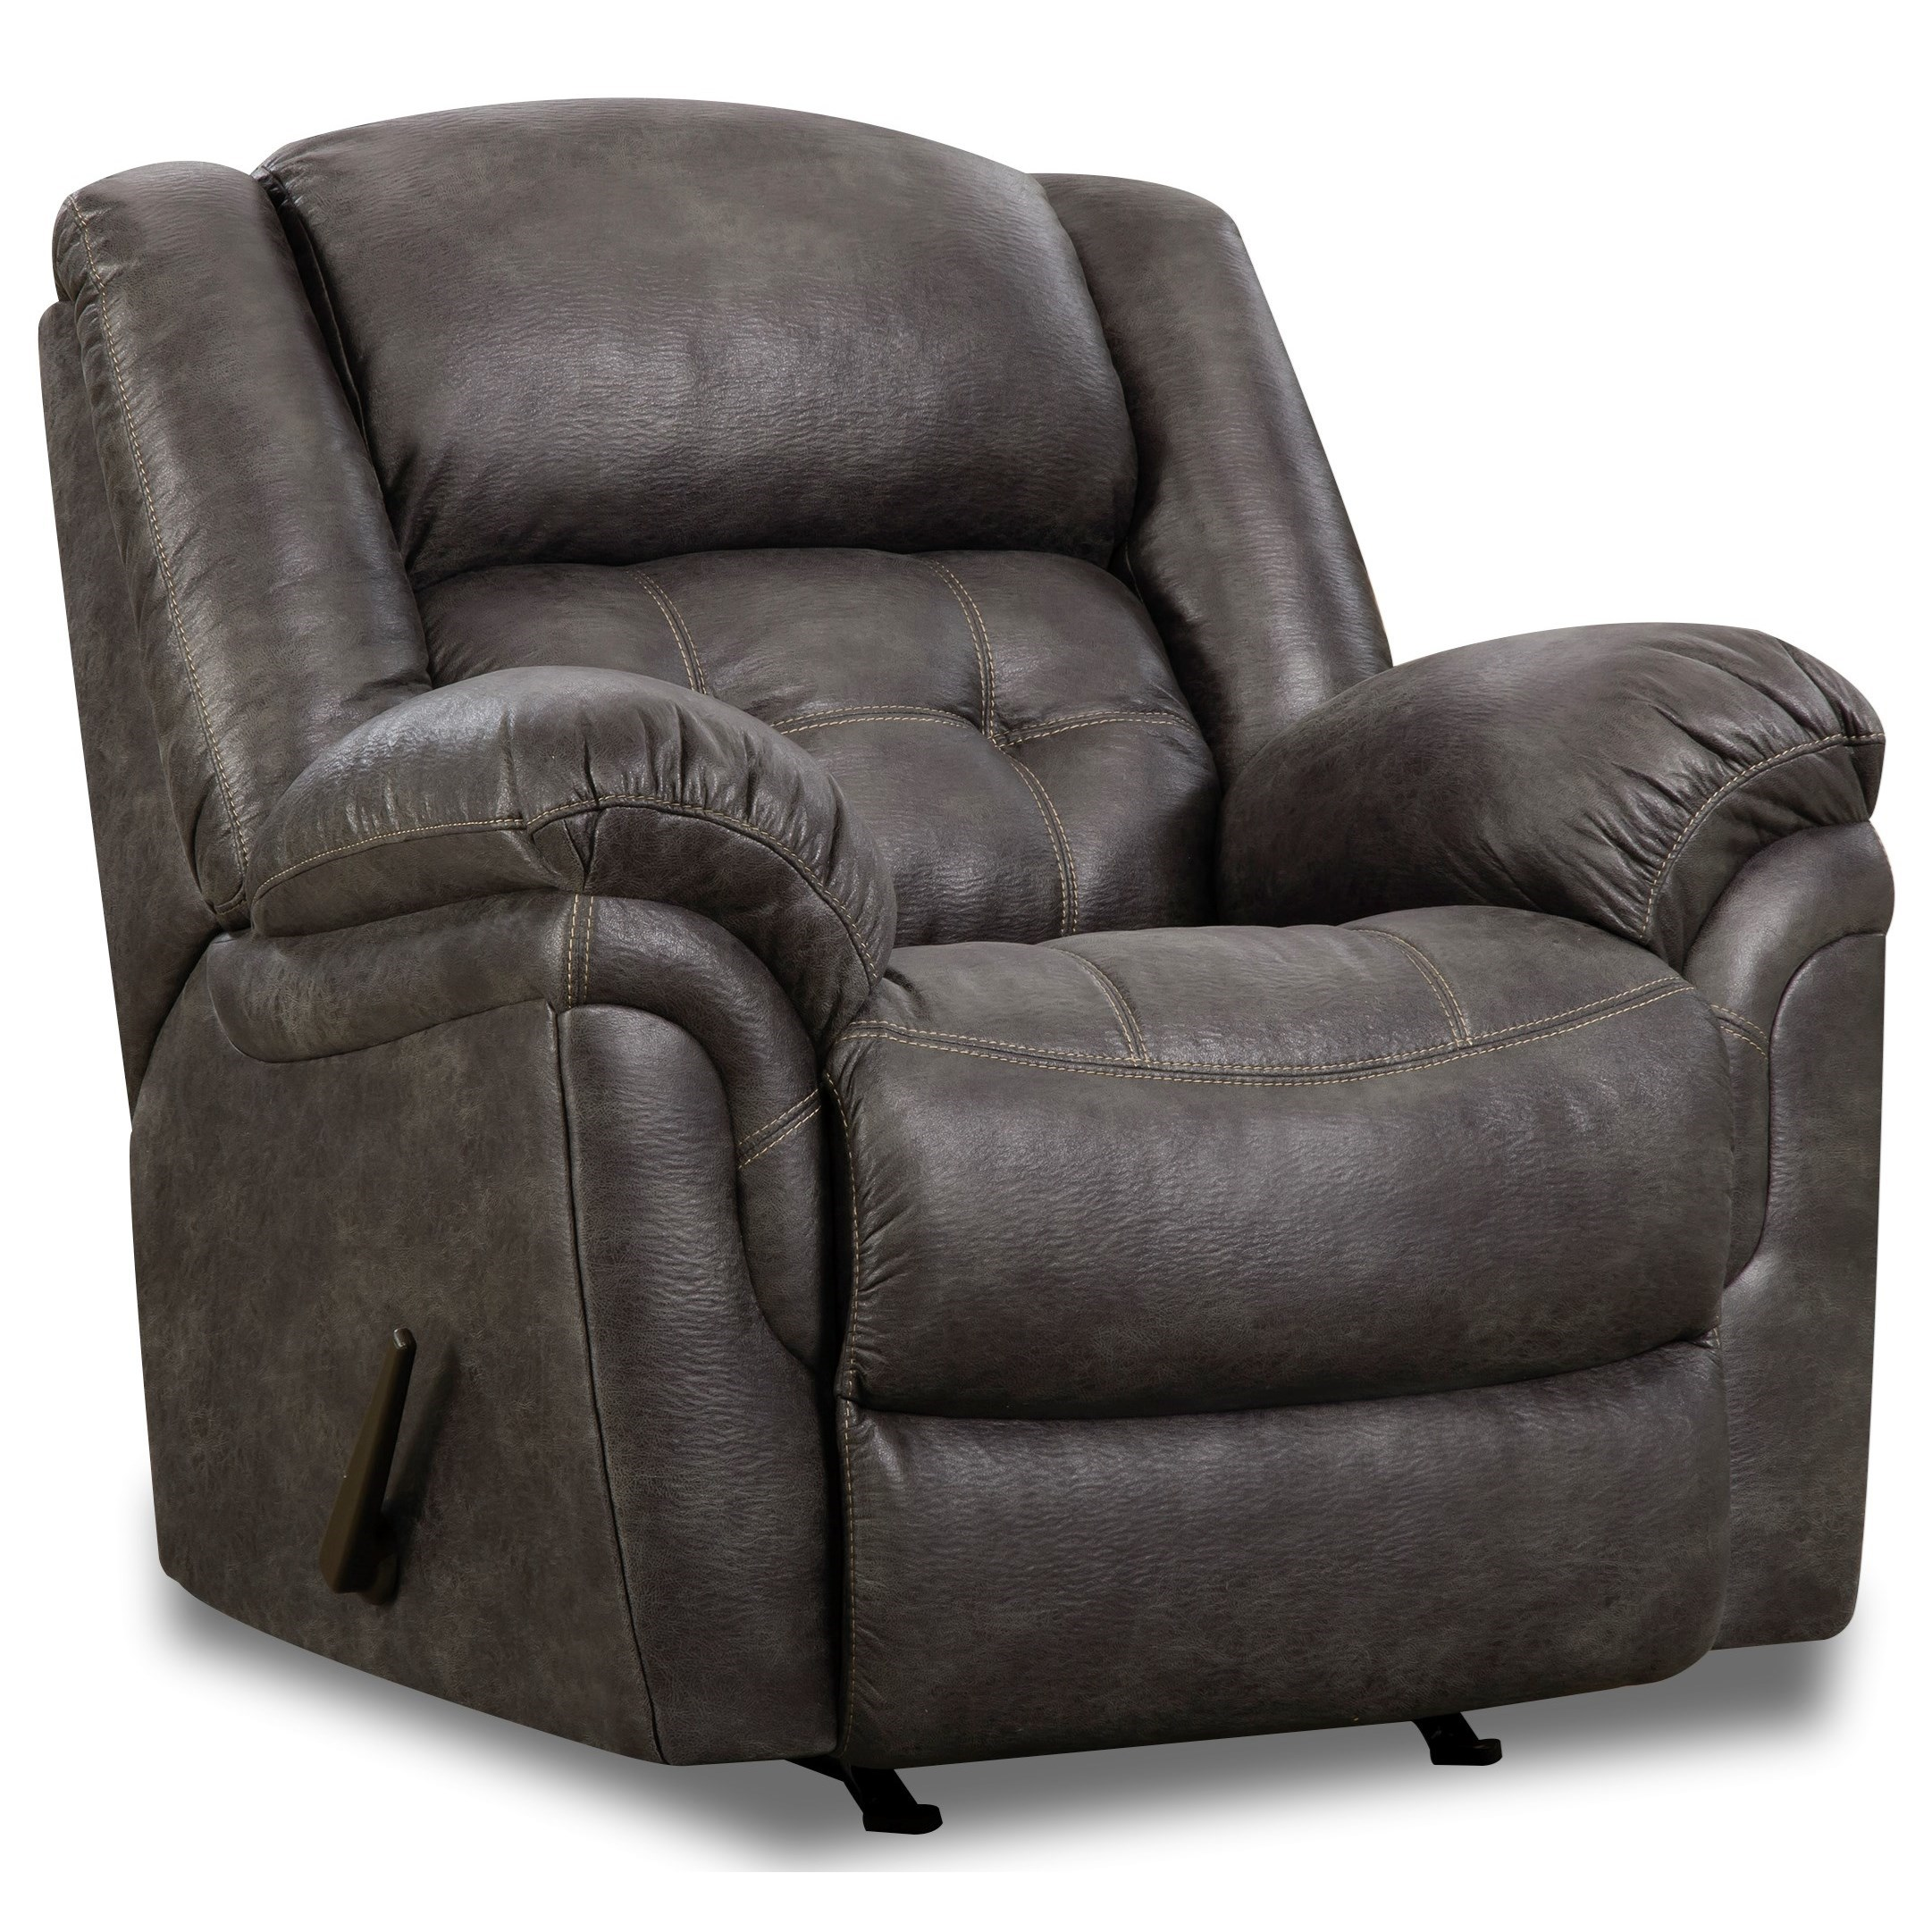 129 Rocker Recliner  by HomeStretch at Westrich Furniture & Appliances